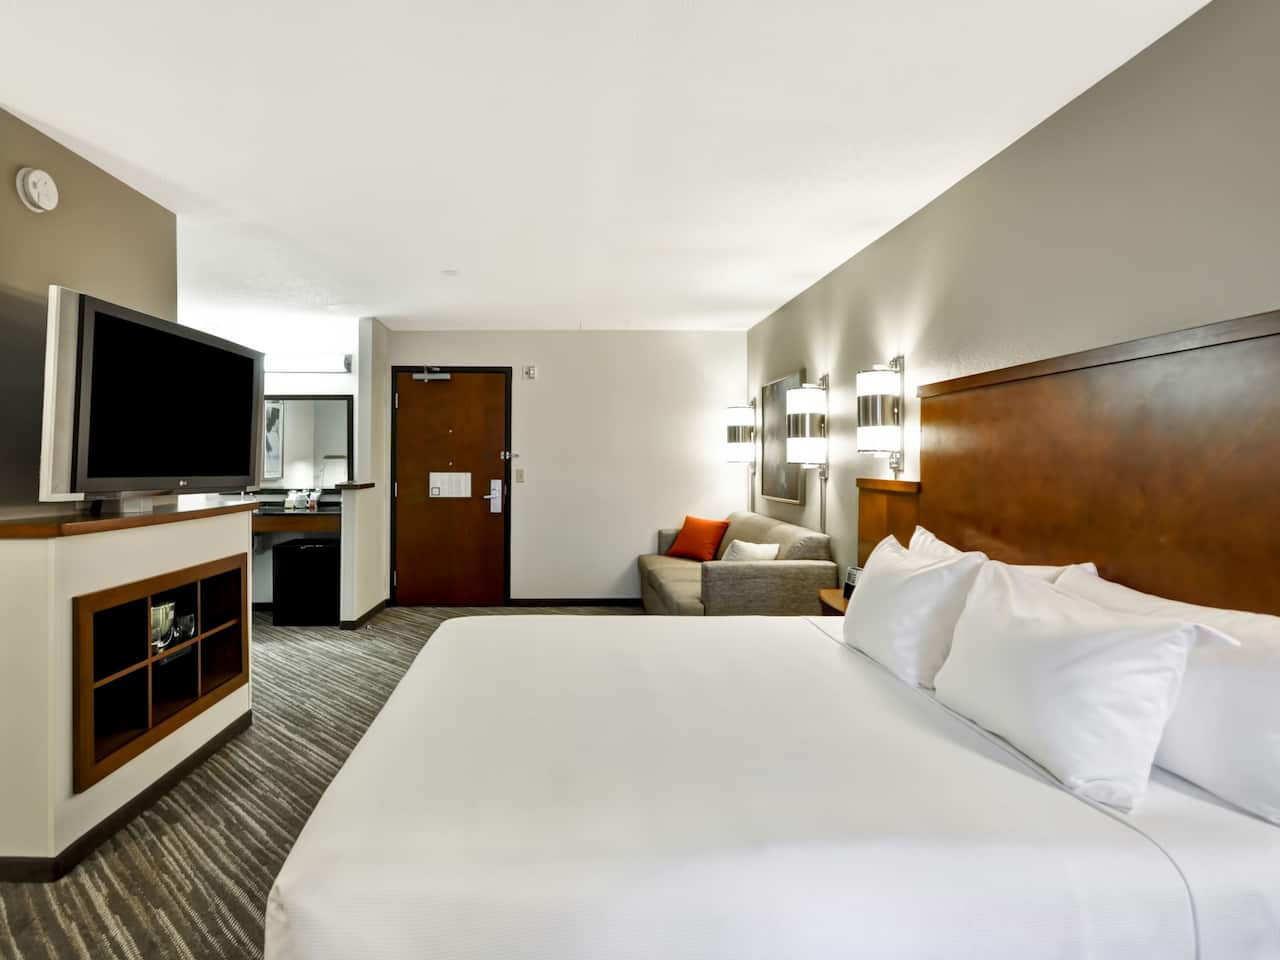 Room at Hyatt Place Minneapolis Airport South